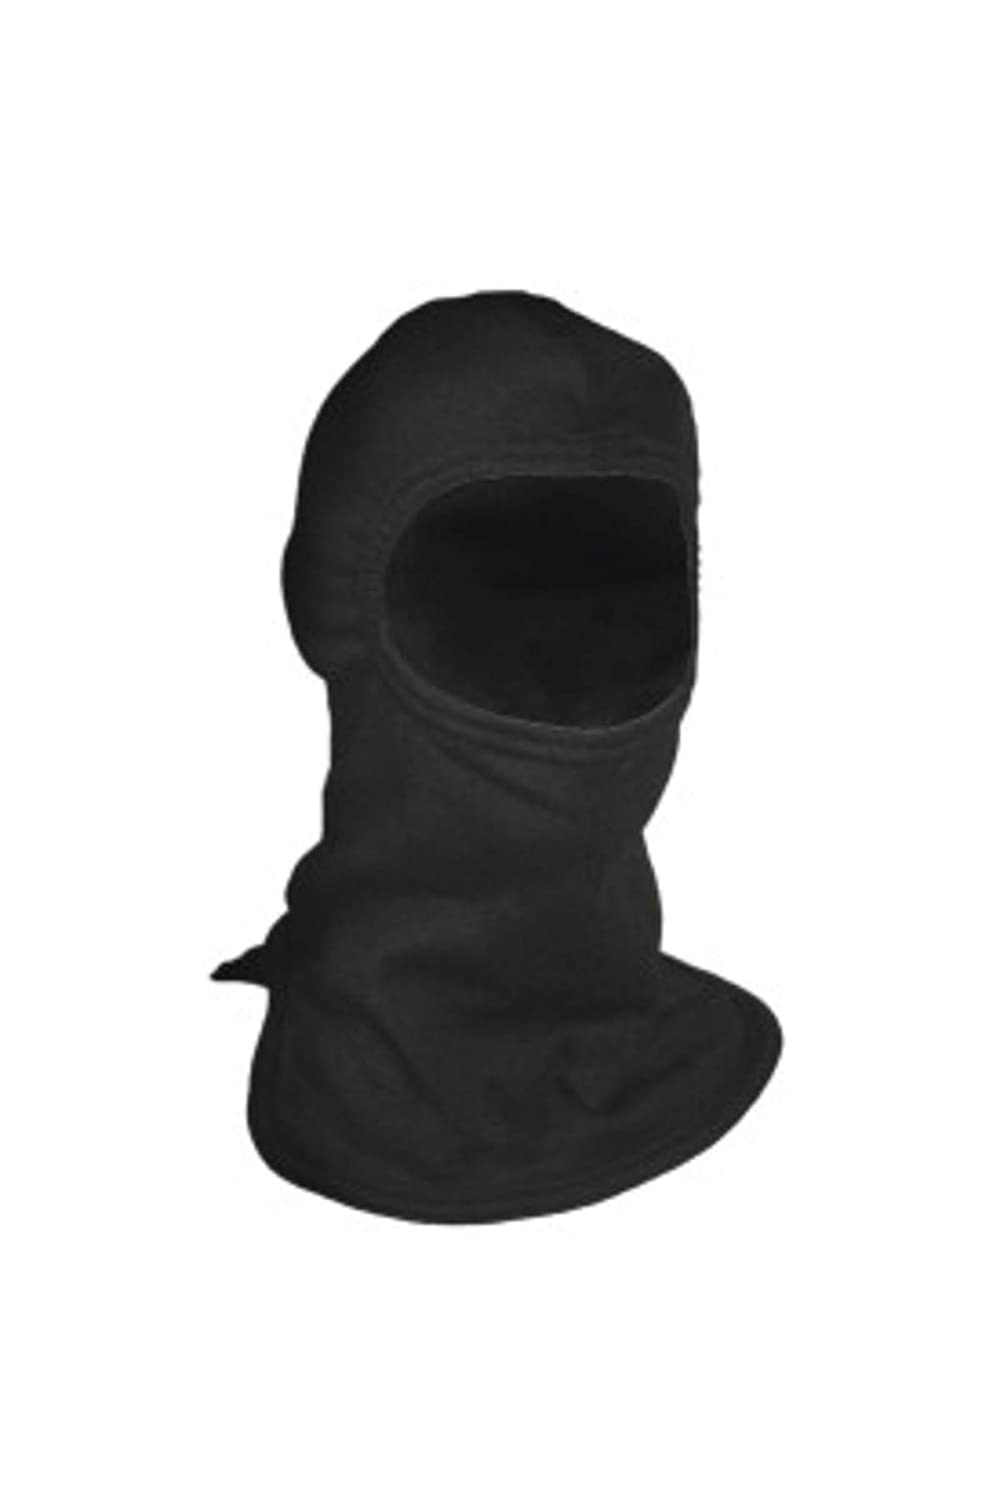 National Safety Apparel H25CX FR Double Layer Carbon Hood (Wider Cut), 23 Calorie, One Size, Black by National Safety Apparel Inc